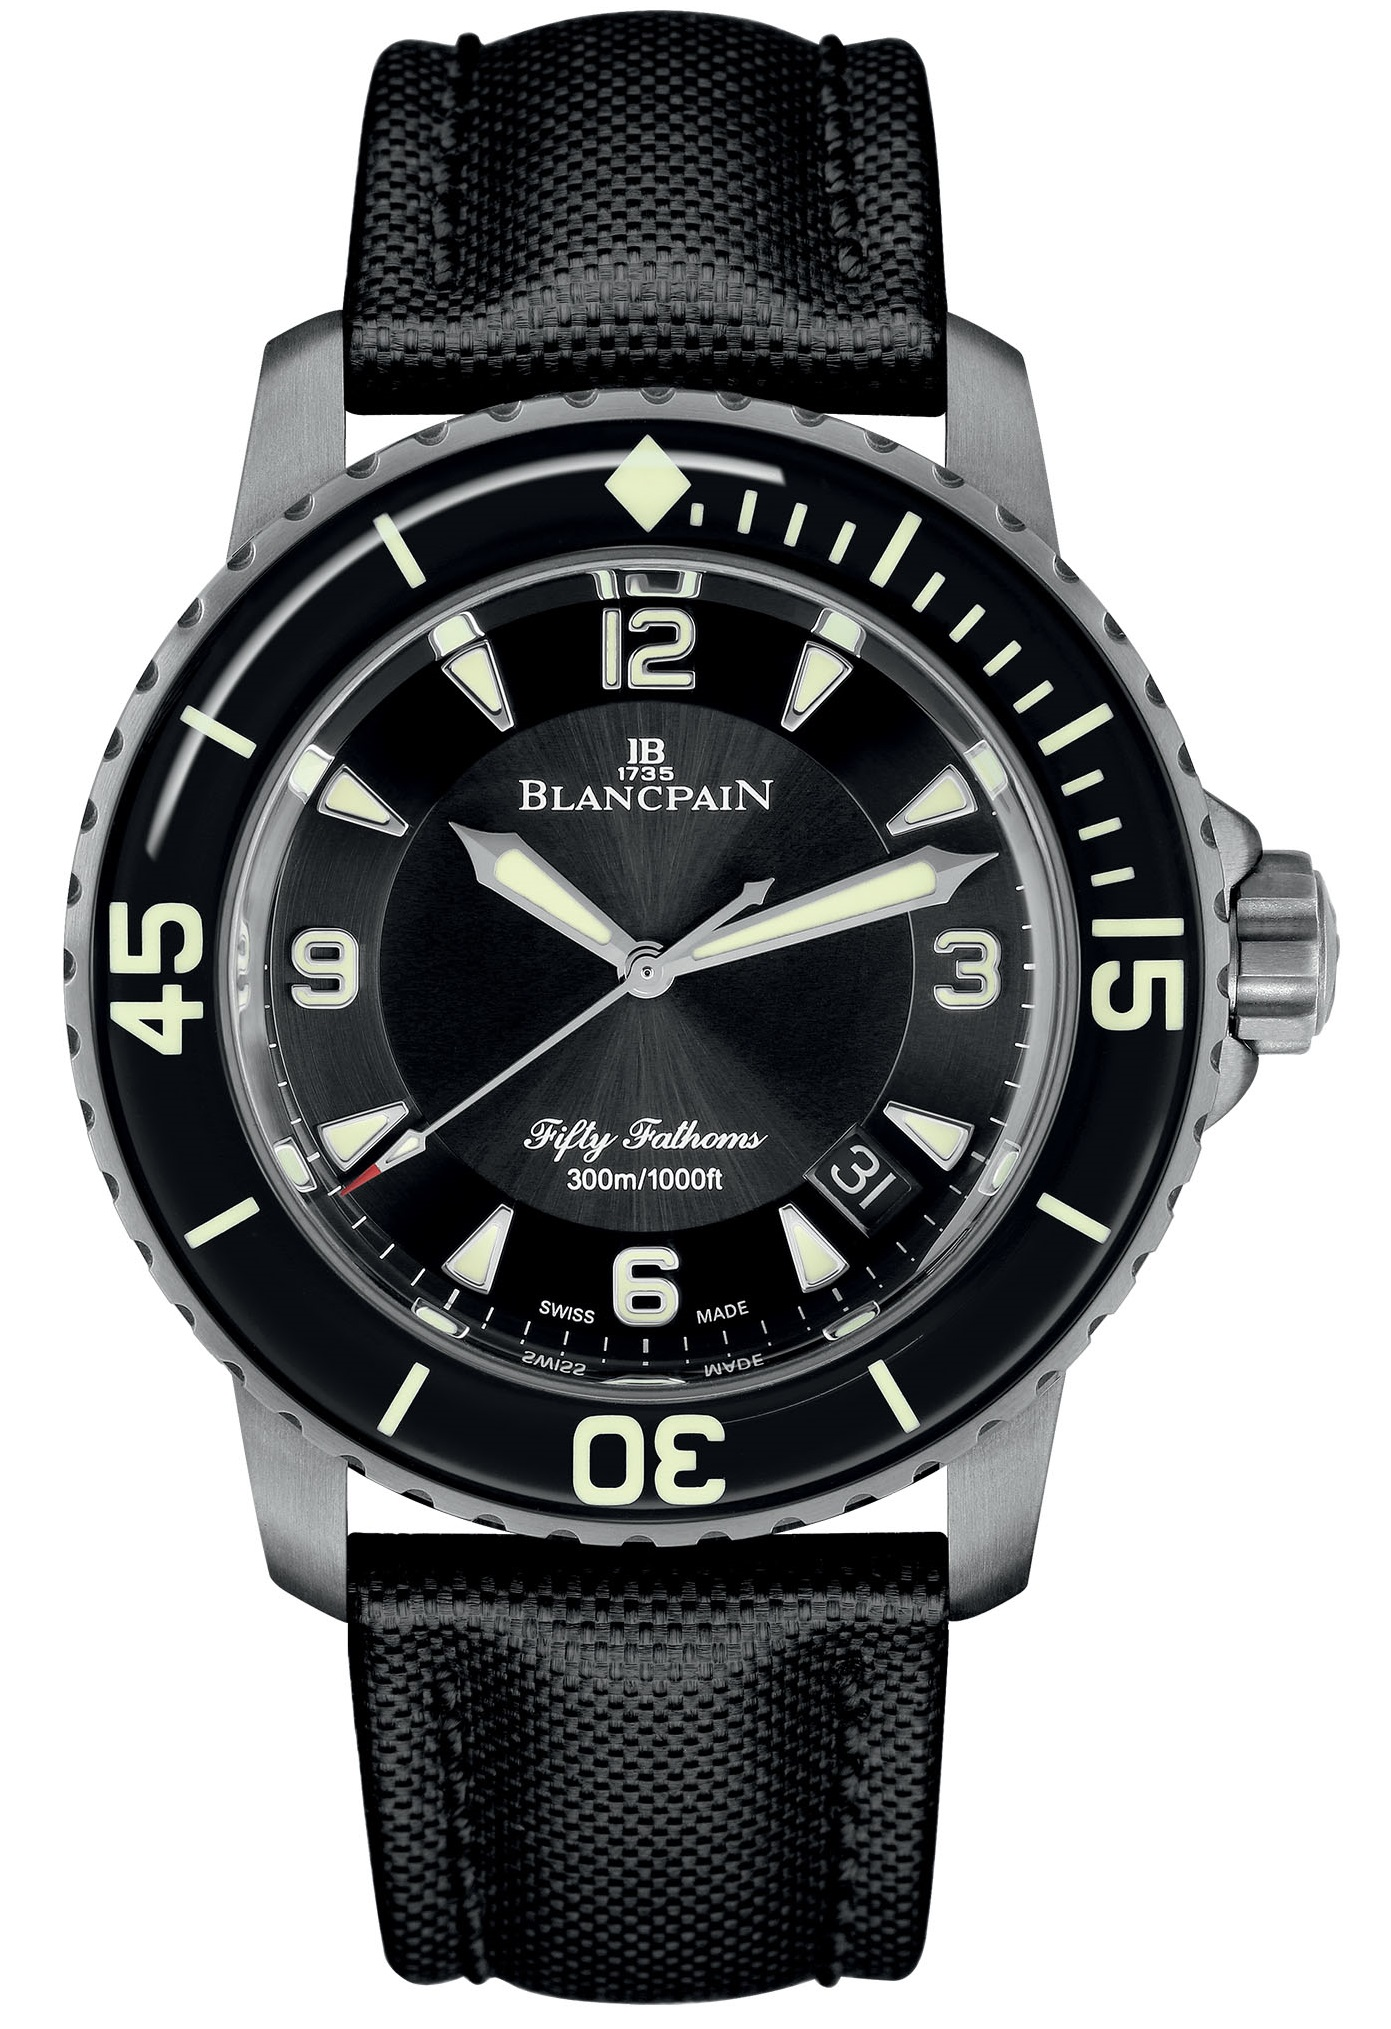 Blancpain-Fifty-Fathoms-Automatique-5015-Titanium-2